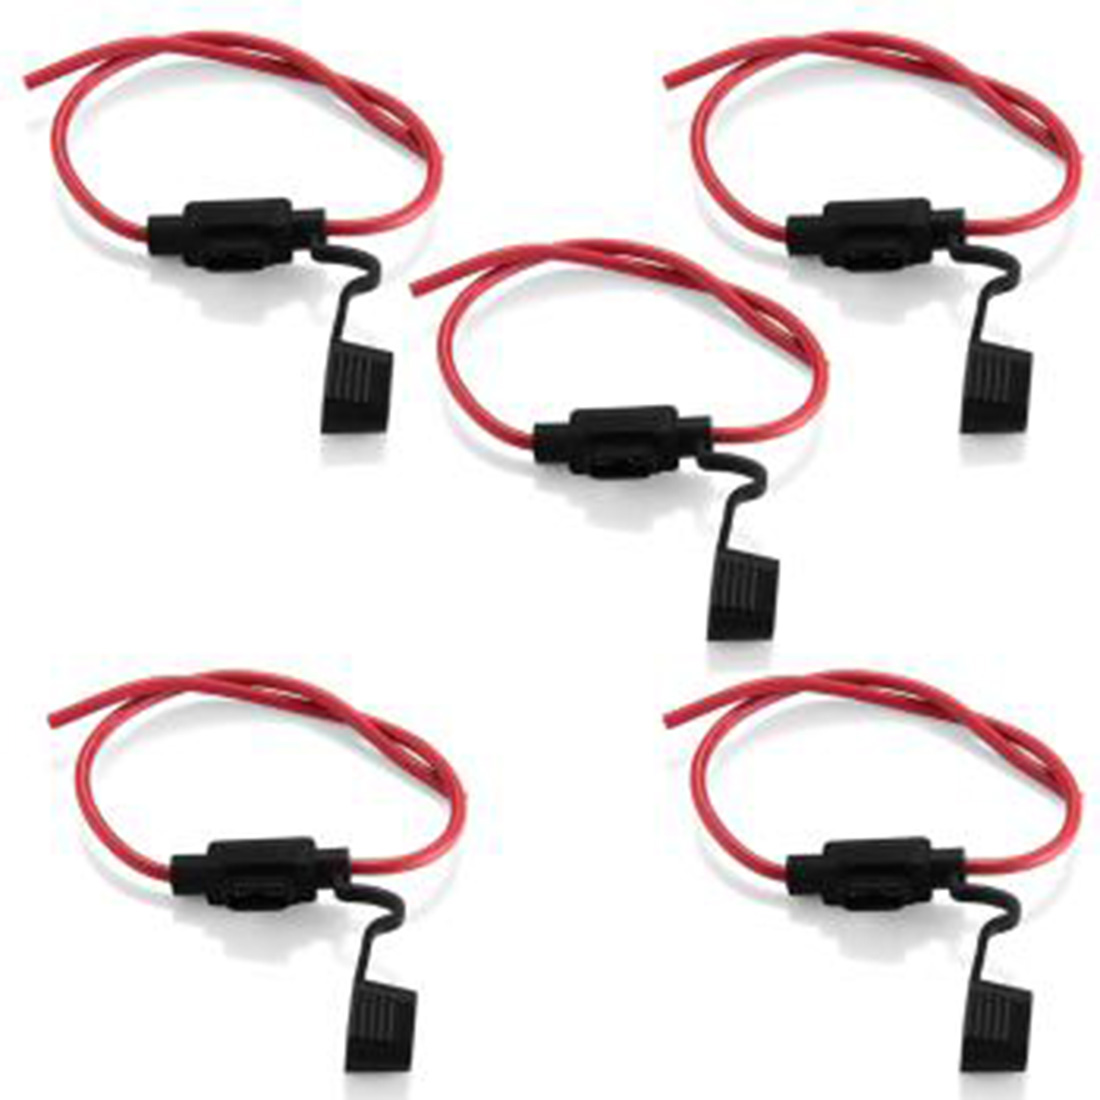 Marsnaska Good 5pcs Waterproof Power Socket Mini Blade Type In Line Ducati Hypermotard Fuse Box Wire Lengthabout 13 14cm The Length Of Both Sides Overall 34cm Wireno14 Package Includes 5 X Holder